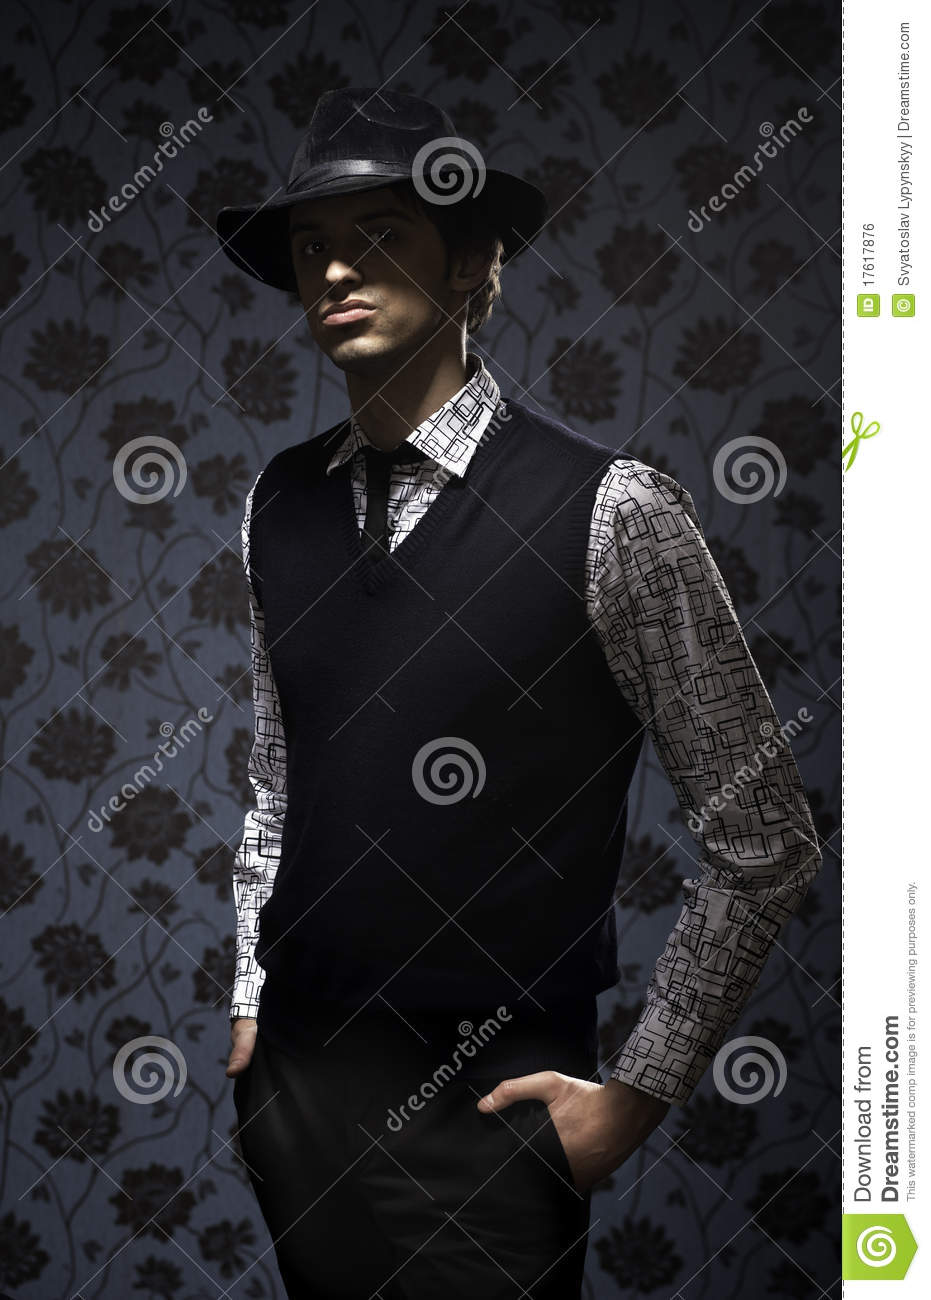 Cute Boy Wallpaper Free Download Gangster In Dark Key On Wallpapers Background Stock Photo